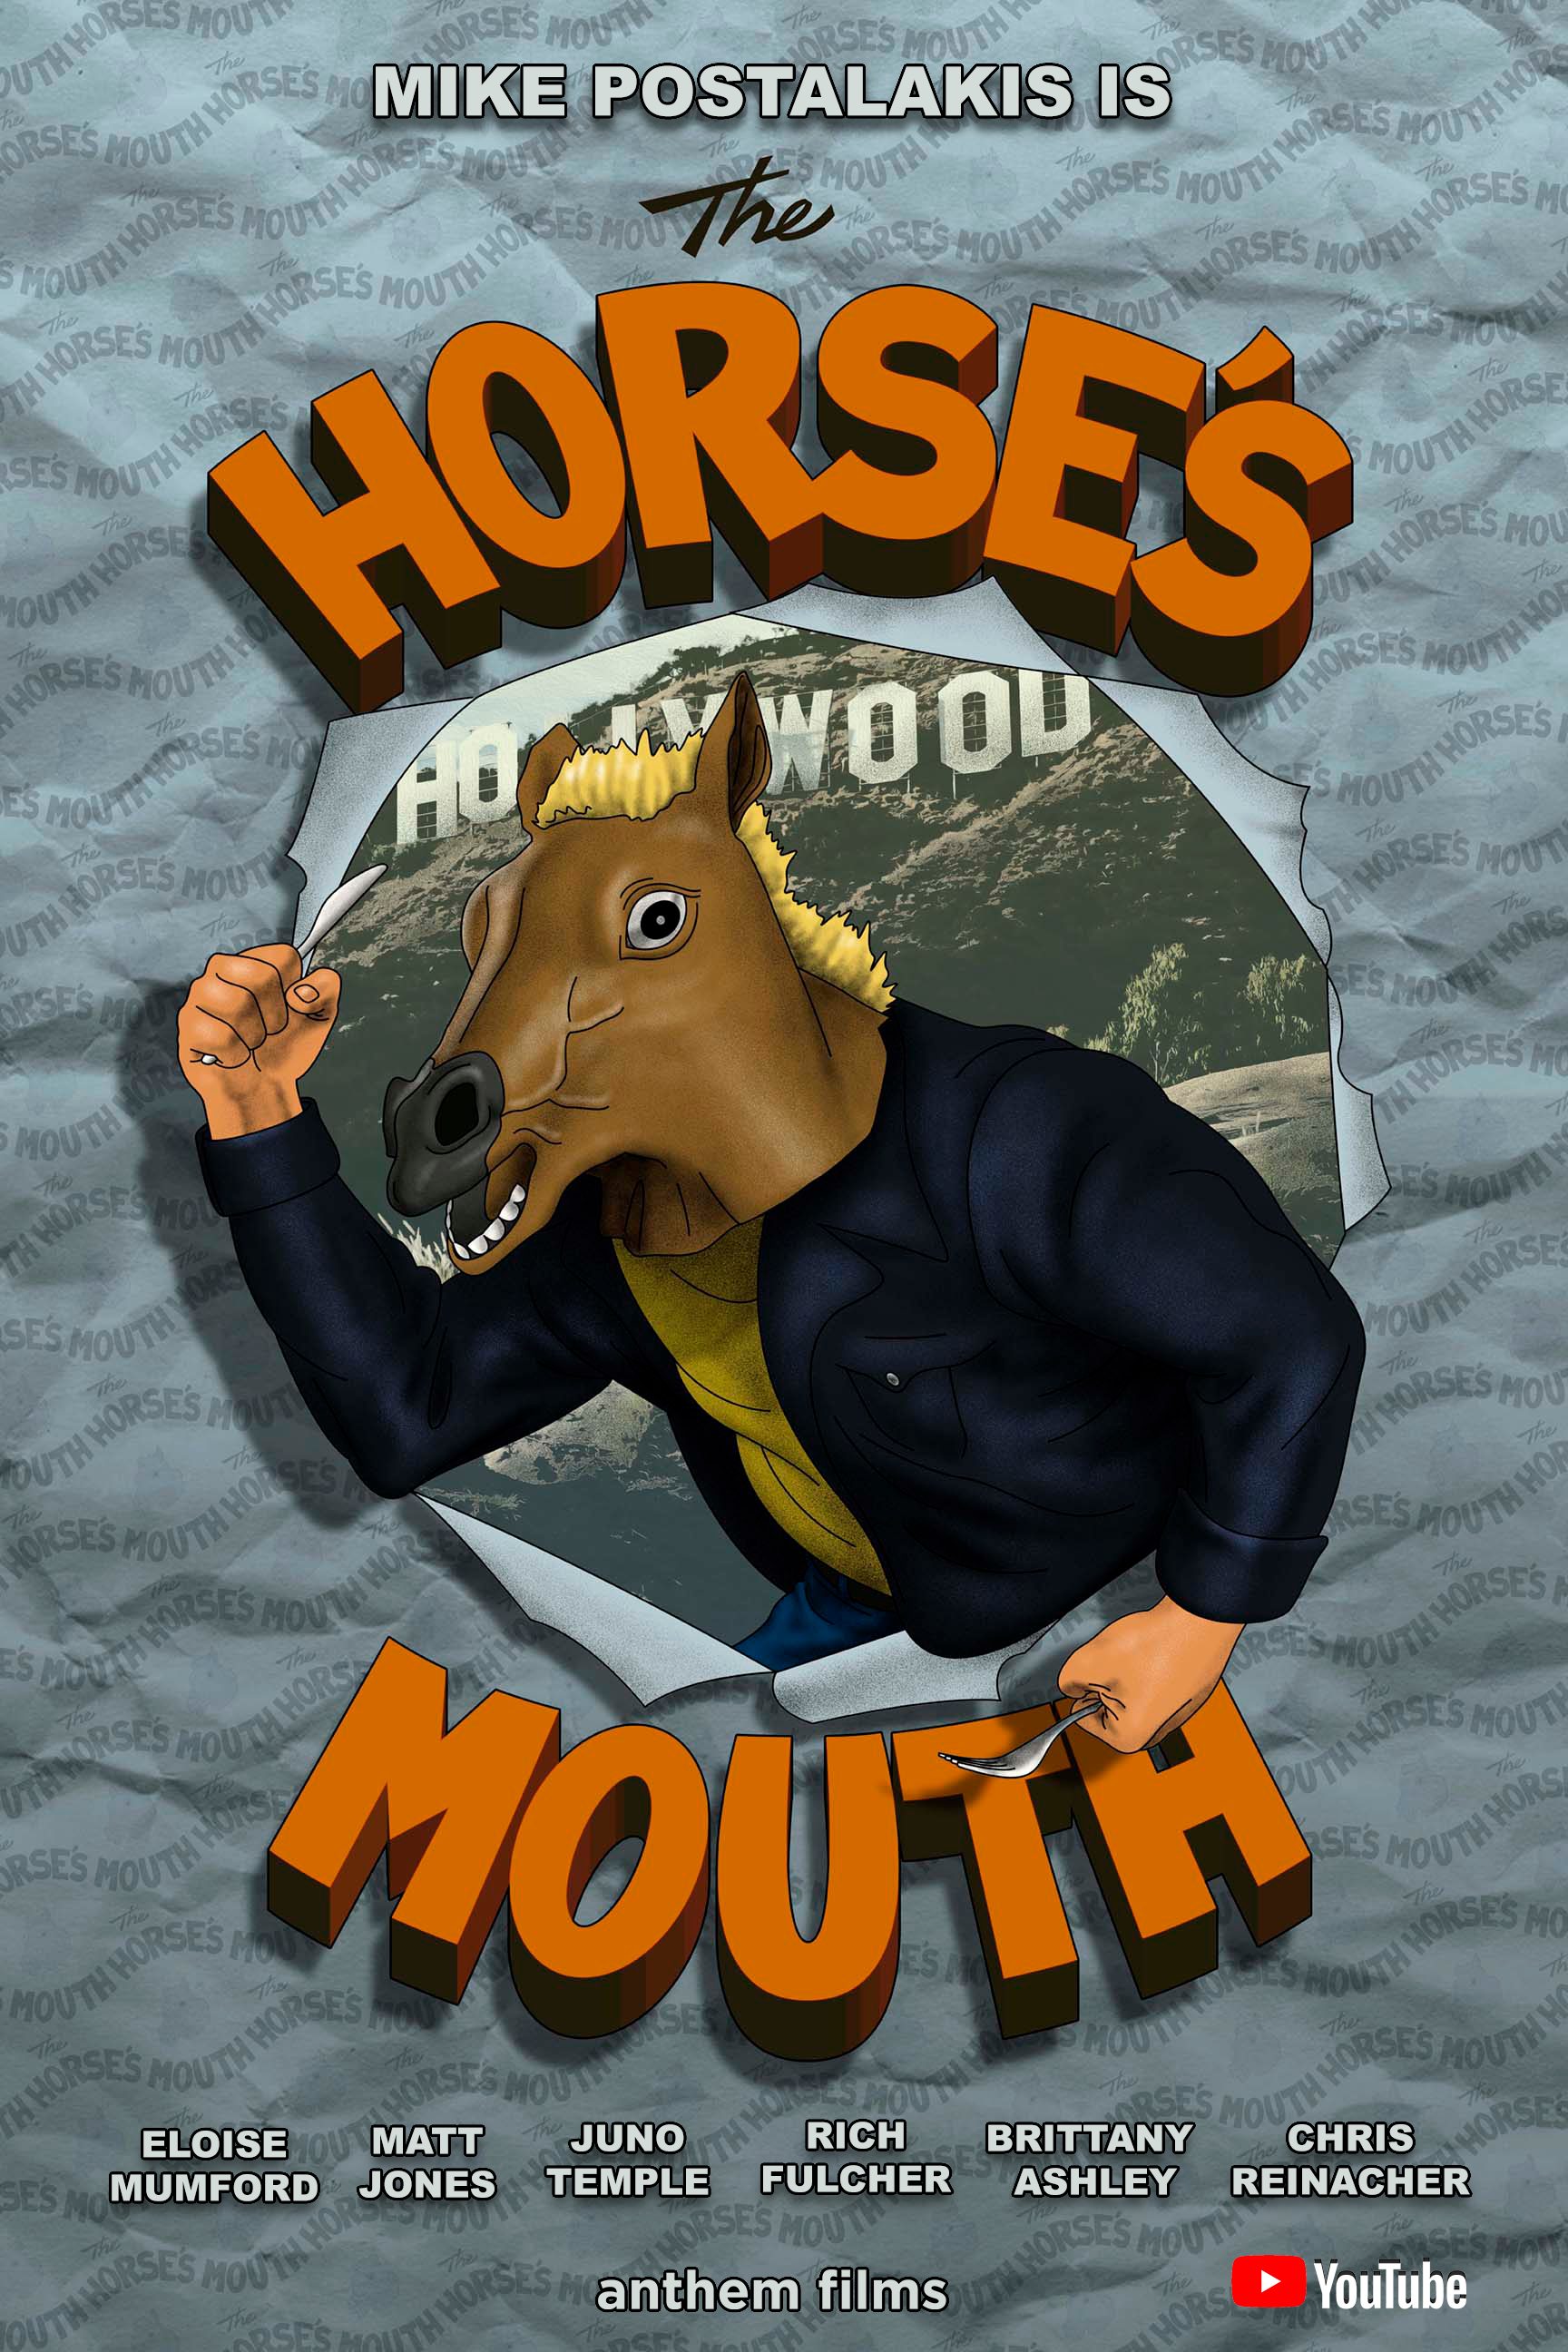 "The HORSE's MOUTH - Fledgling food critic, Mike Postalakis, is writing a book about the Los Angeles food scene, and filming his own food show. The problem is, Mike thinks he needs to wear a horse mask to hide his identity from the people serving him food. The Horse's Mouth is a show with in a show and a show about a show. Mike's girlfriend Eloise becomes dissatisfied with Mike selfishness and obsession over his show. While Mike goes further down the rabbit-hole, and even begins seeing an unknown man in an elephant's mask, he doesn't even notice Eloise drifting away.* * *Written & Created By Mike Postalakis & James GreerDirected By Djay Brawner & Mike PostalakisProduced By Gabriel Younes, May Iosotaluno, DJay Brawner, Mike Postalakis, and Nicole SwedlowOriginal Score By Mark YaegerExecutive Producer DJay BrawnerDirector of Photography Kyle FallonEdited By Chris ""Fleck"" HernandezAn Anthem Films Production"